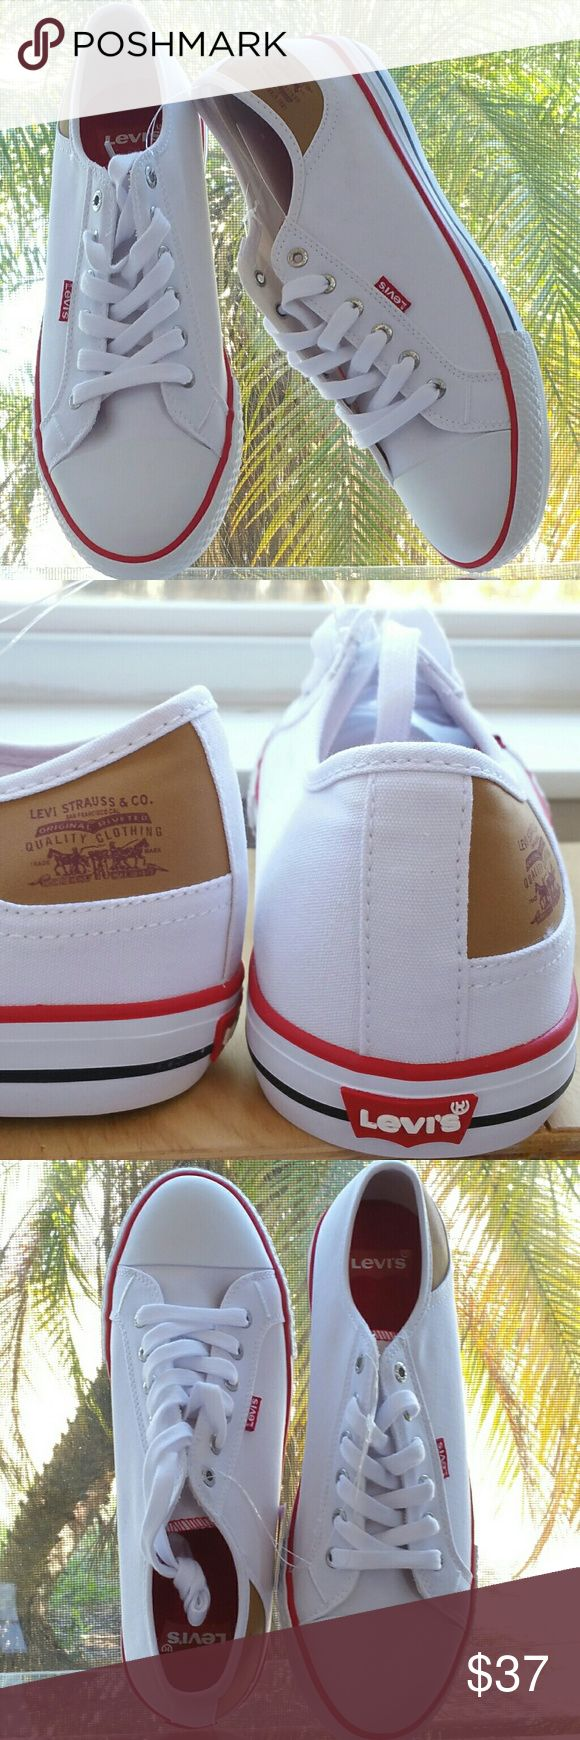 Levi's Canvas Sneakers Levi's brand new white washable canvas sneakers. Absolutely comfortable and look really cute paired with everything to make your outfit for the Festival look casually chic chic and fun. White with red lettering black/red piping tan/red signature logo @ outside of ankle earthy sand color sole. I would wear these with crop pants a pair of rolled up jeans a skirt or a fun dress. You would look super crisp and cute in these. Will be shipped in original box.11L 4W. Levi's…